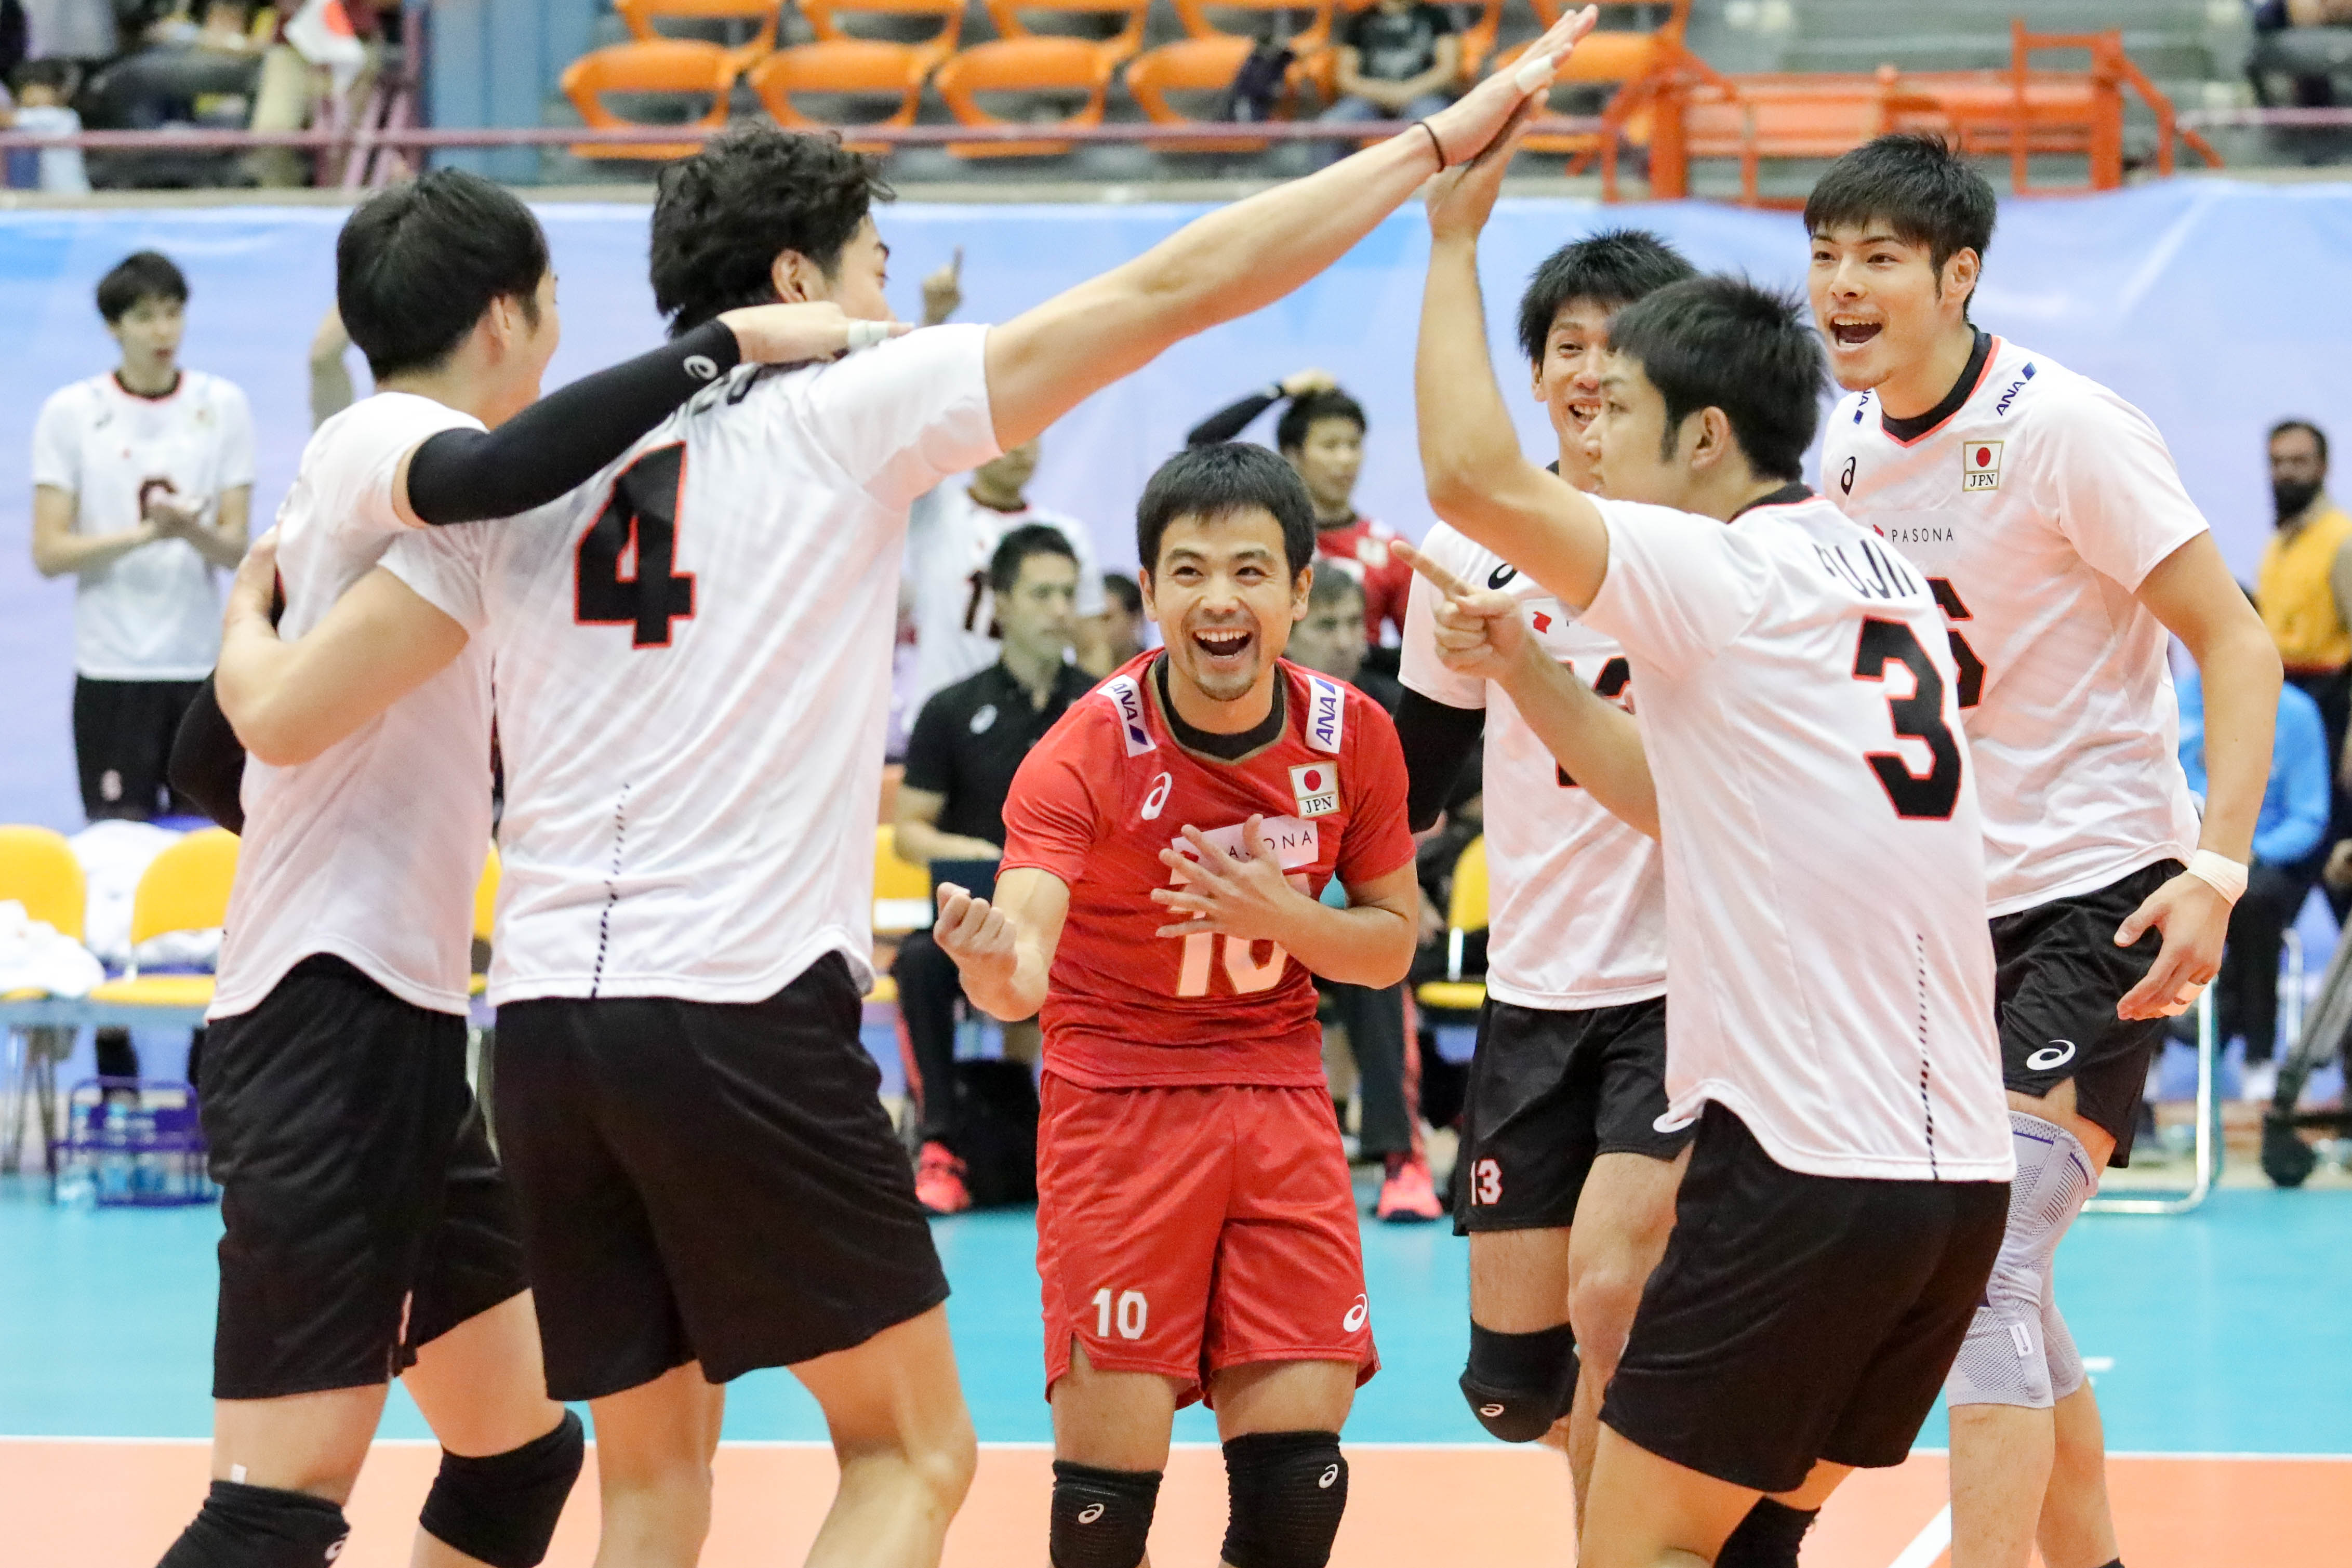 SHIMIZU STEERS JAPAN TO 3-1 WIN AGAINST KOREA AND BRONZE MEDAL